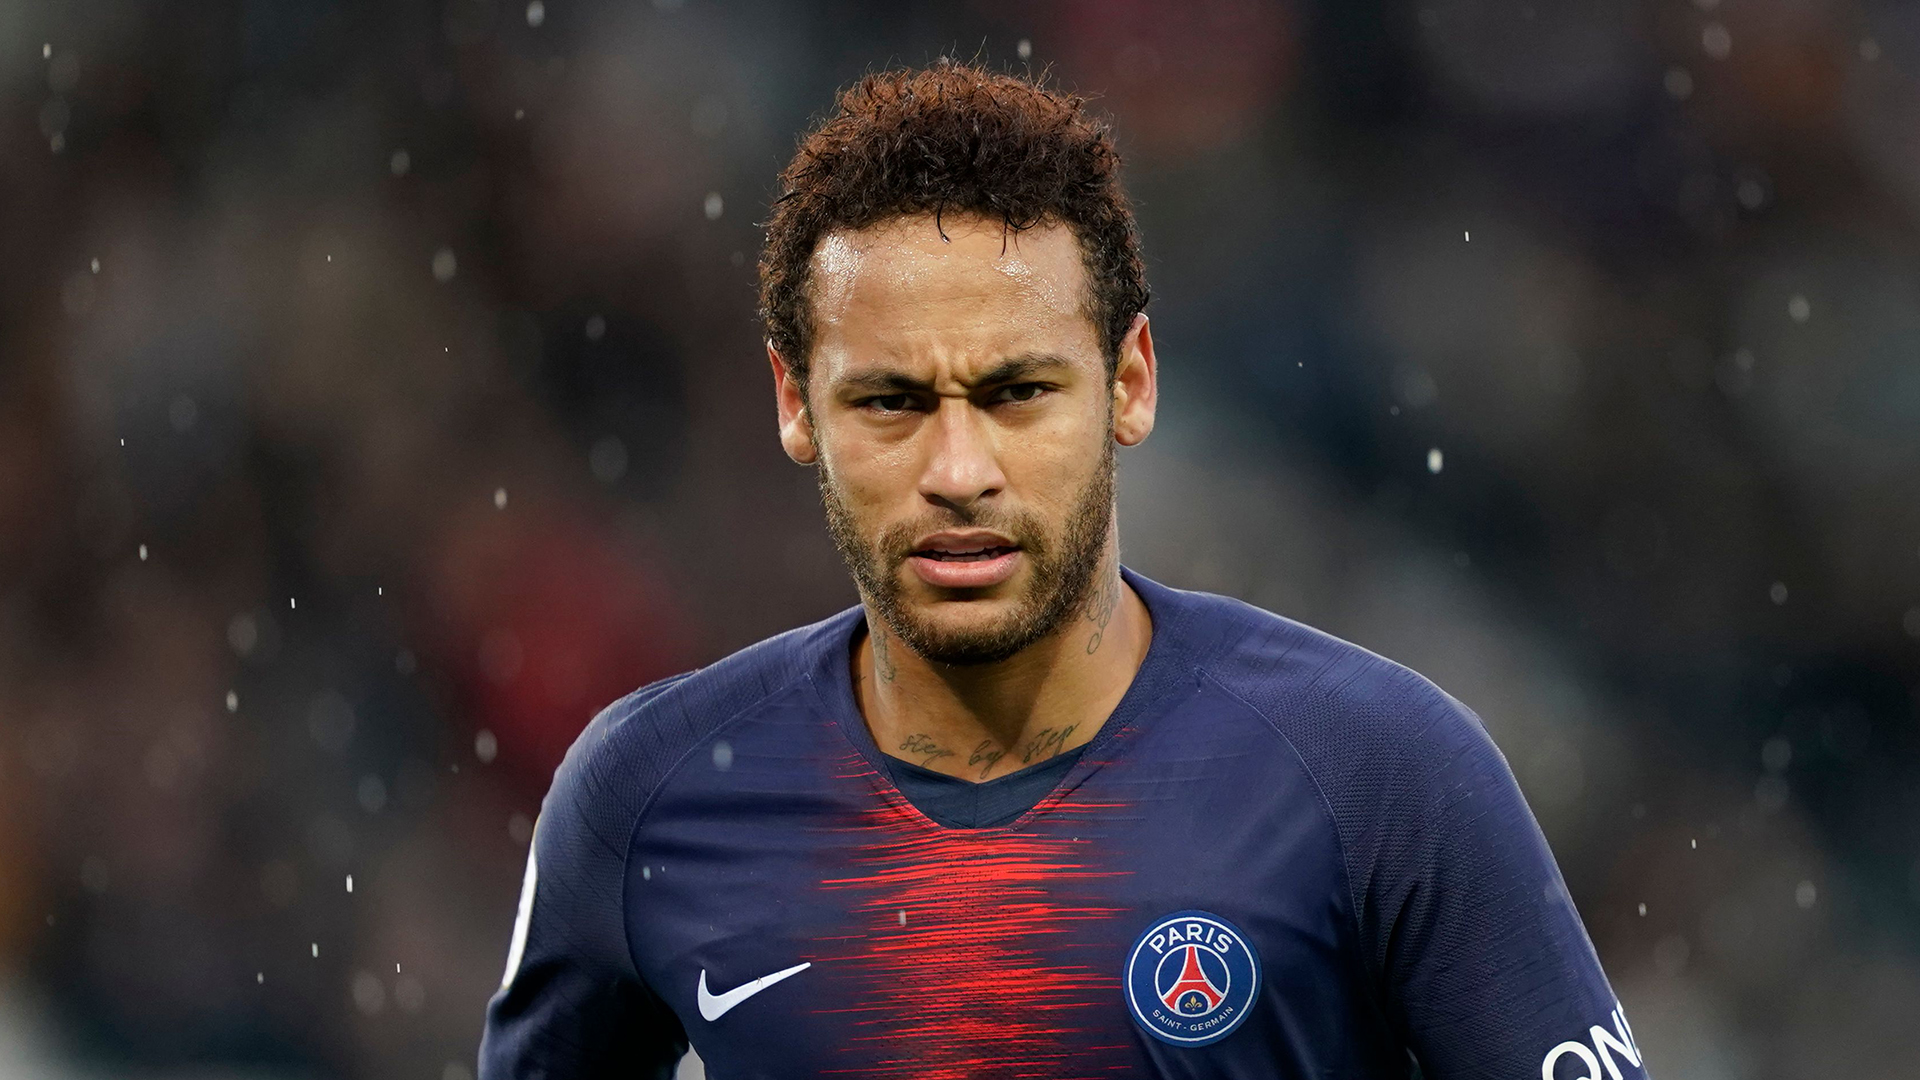 Neymar rape allegation: PSG player denies Paris hotel claims after Brazilian files report with police